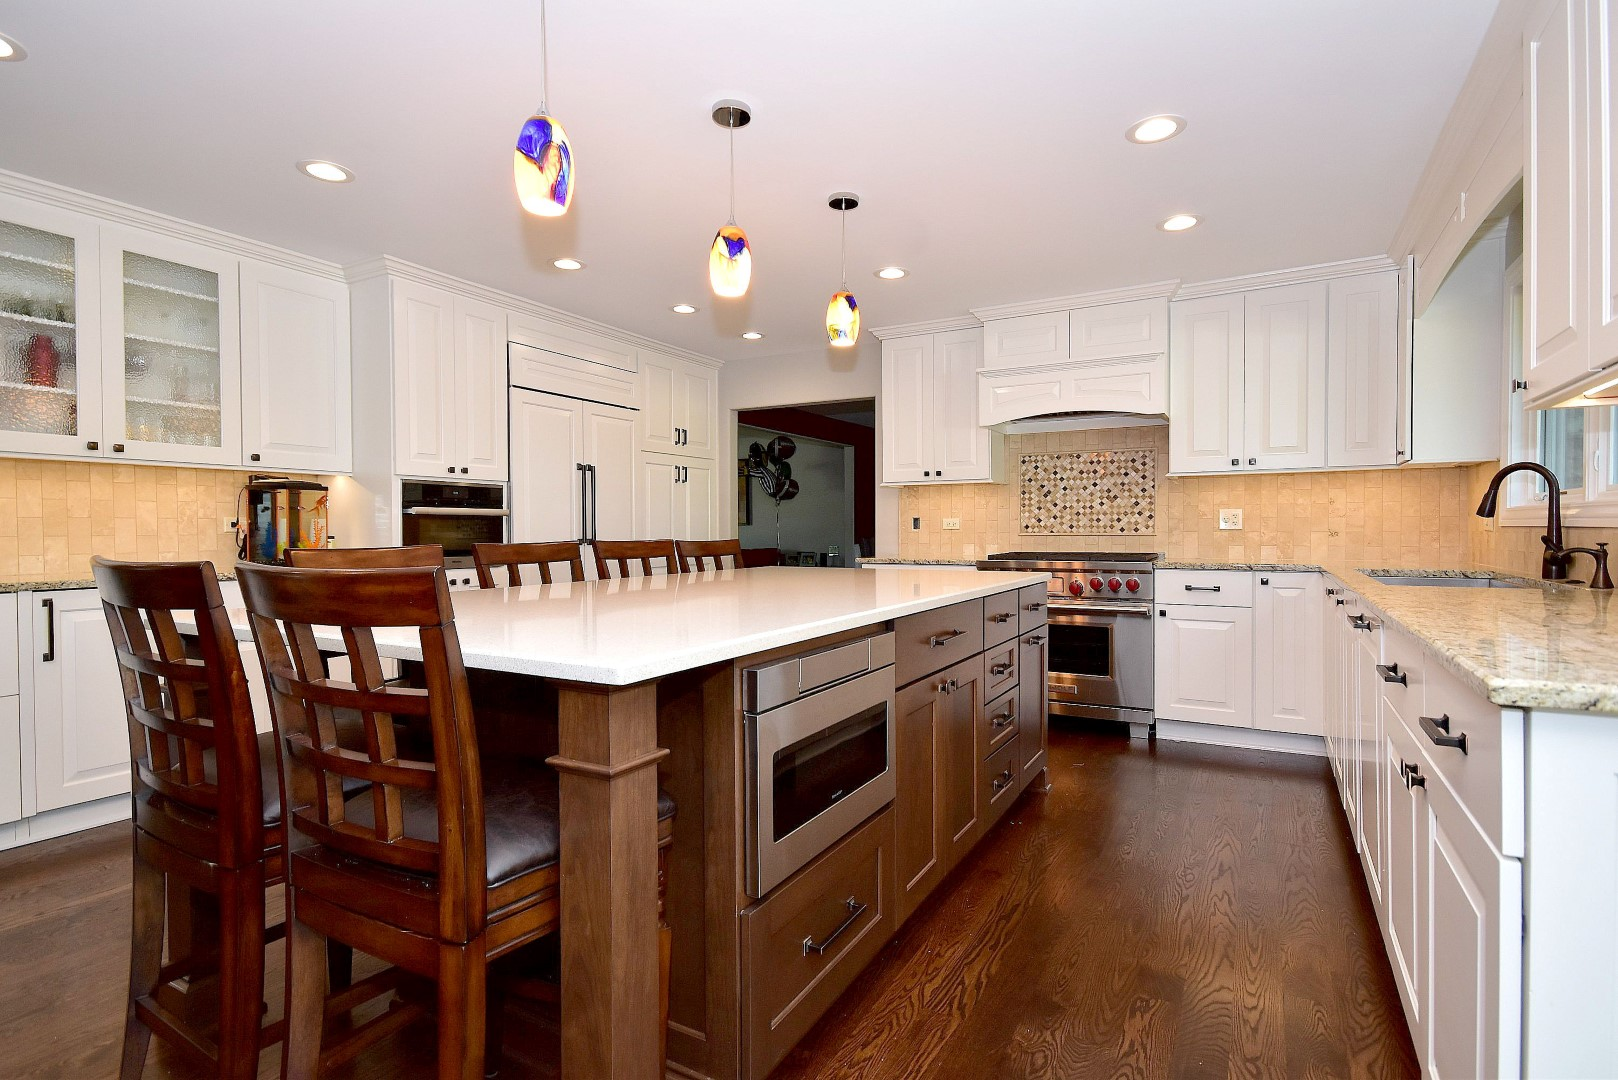 amish kitchen cabinets chicago sharp knives pictures archive custom kitchens